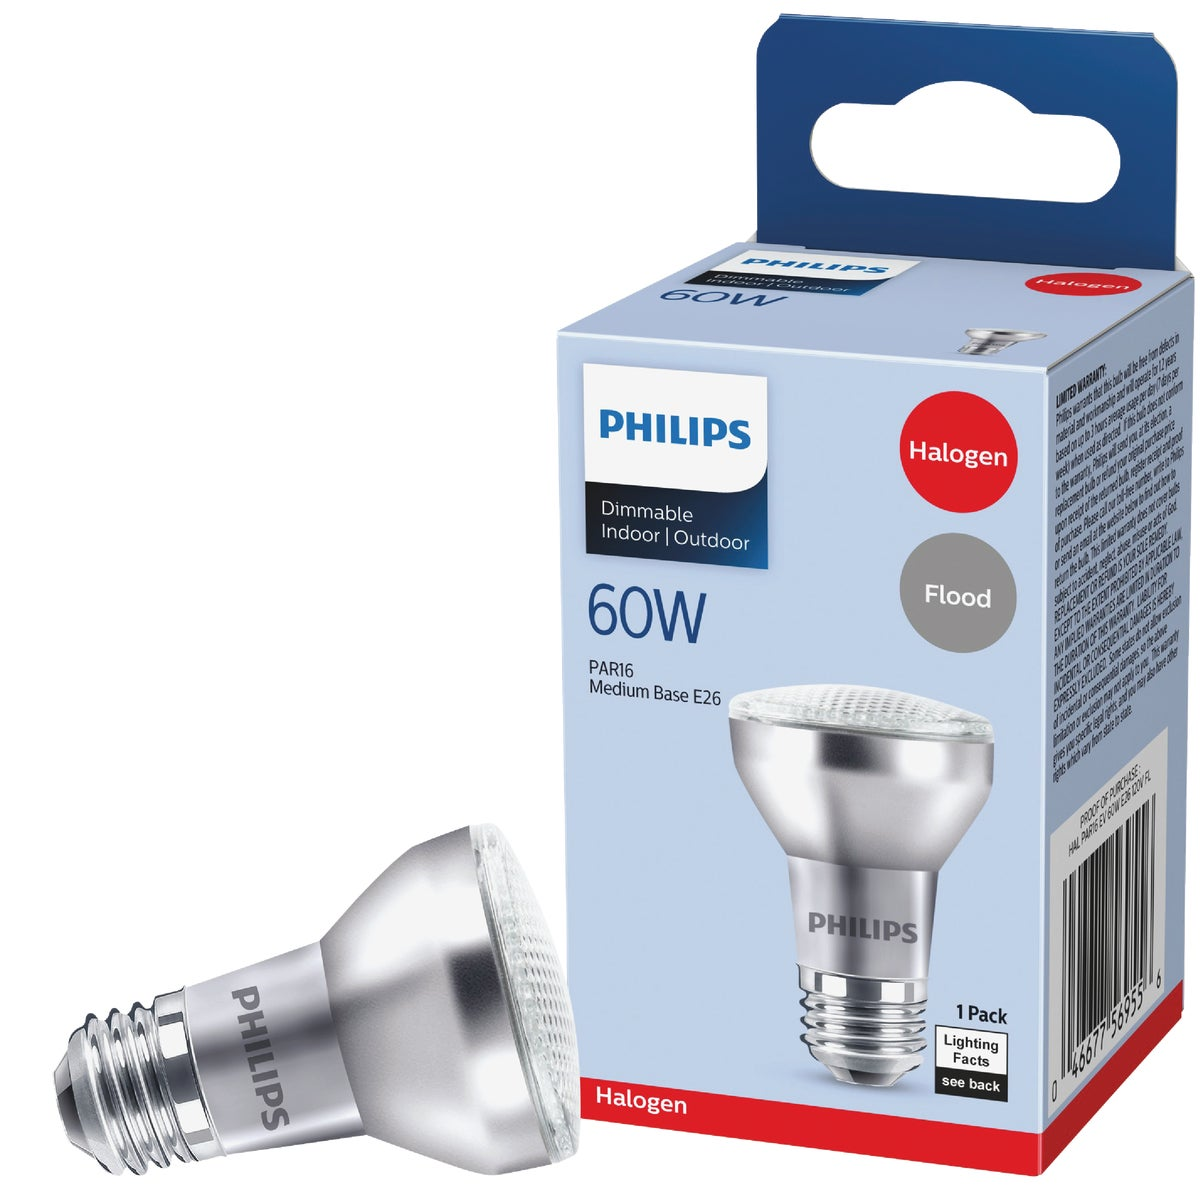 60W PAR16 FLD HALGN BULB - 47578 by G E Lighting